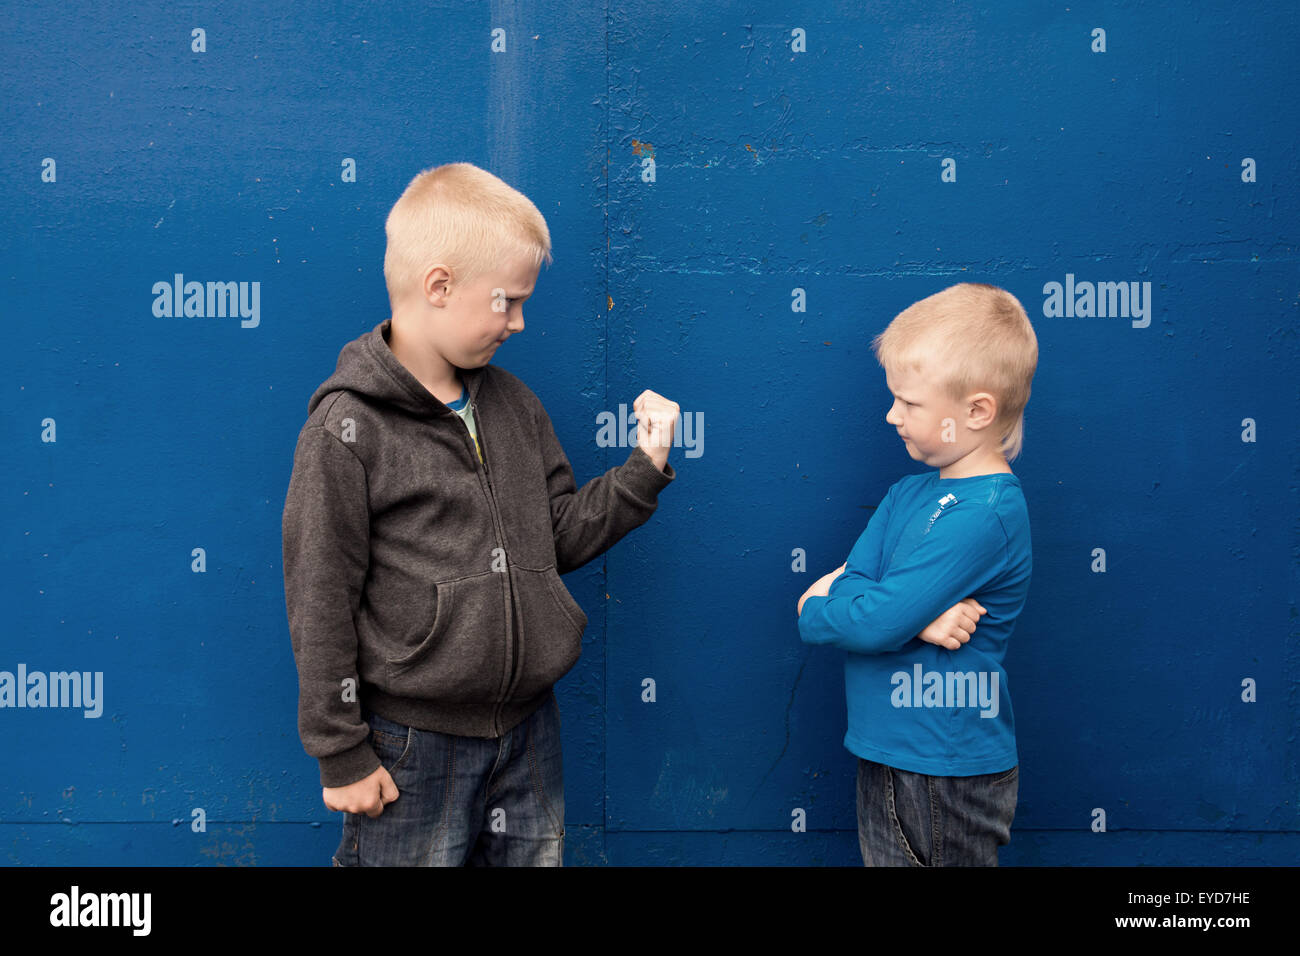 fight between two brothers (kids, boys), angry aggressive children - Stock Image